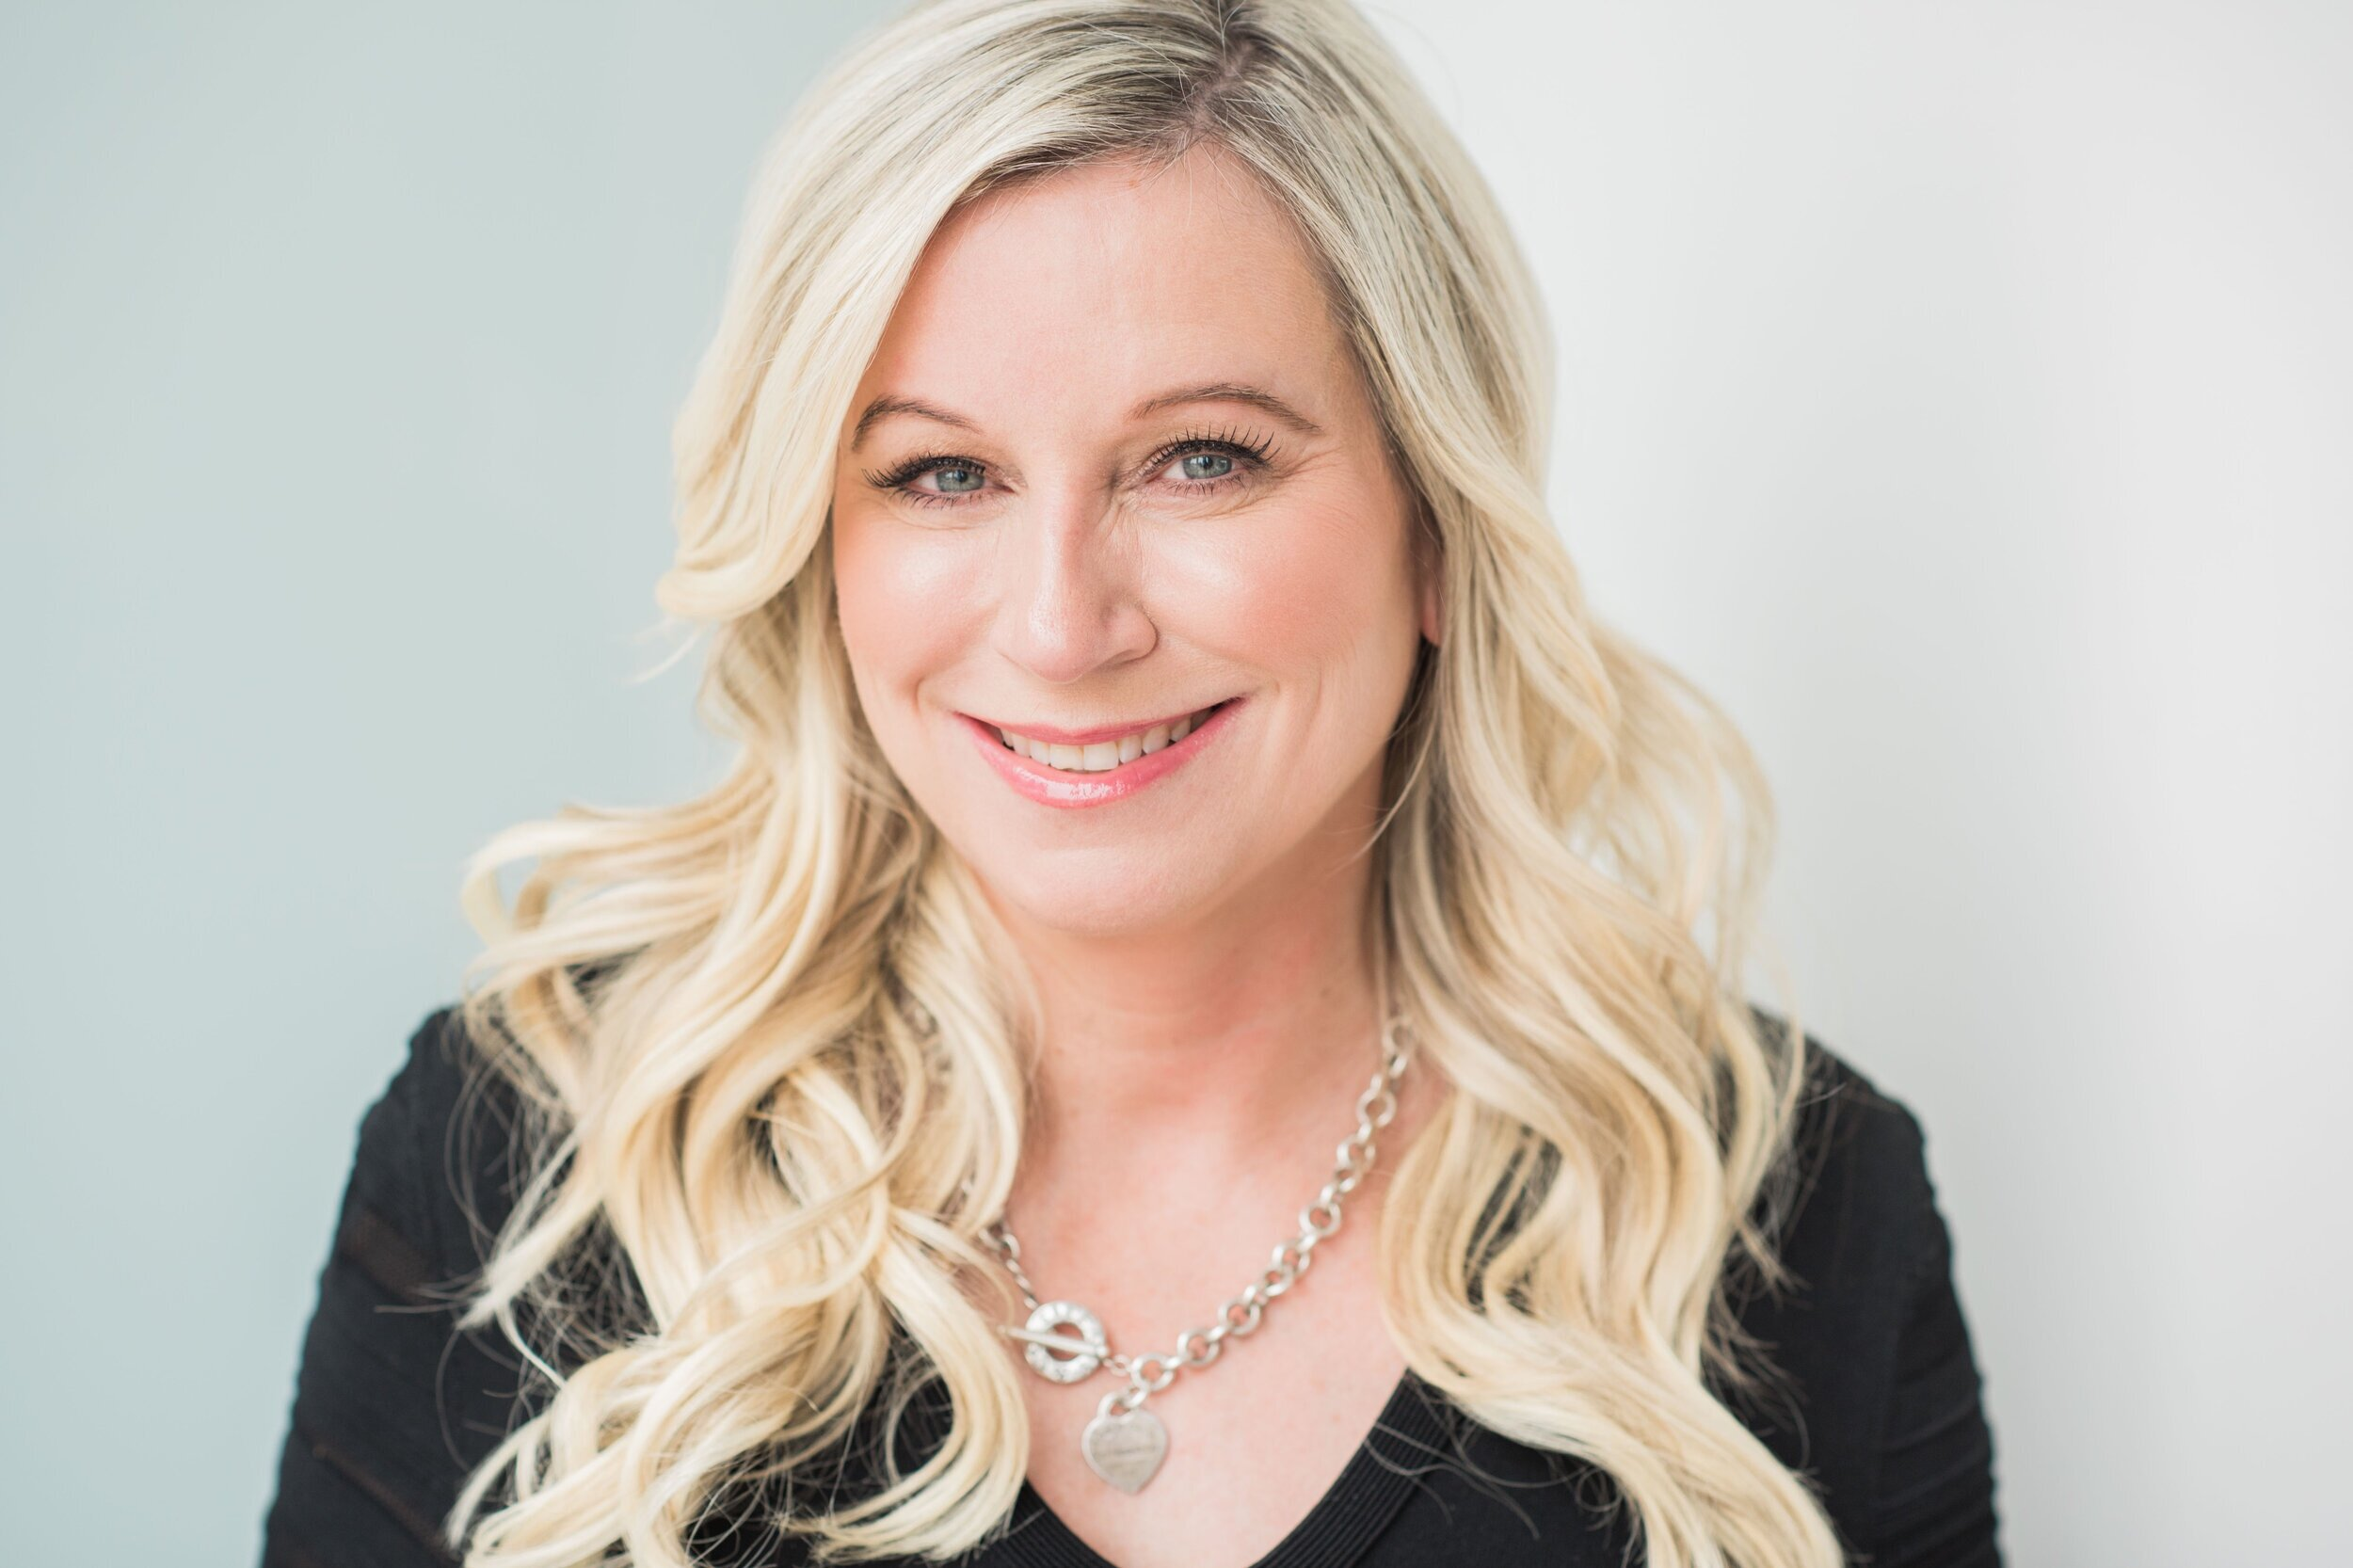 Leanne Townsend, Family Lawyer and Divorce Coach - How to save money on lawyers bills